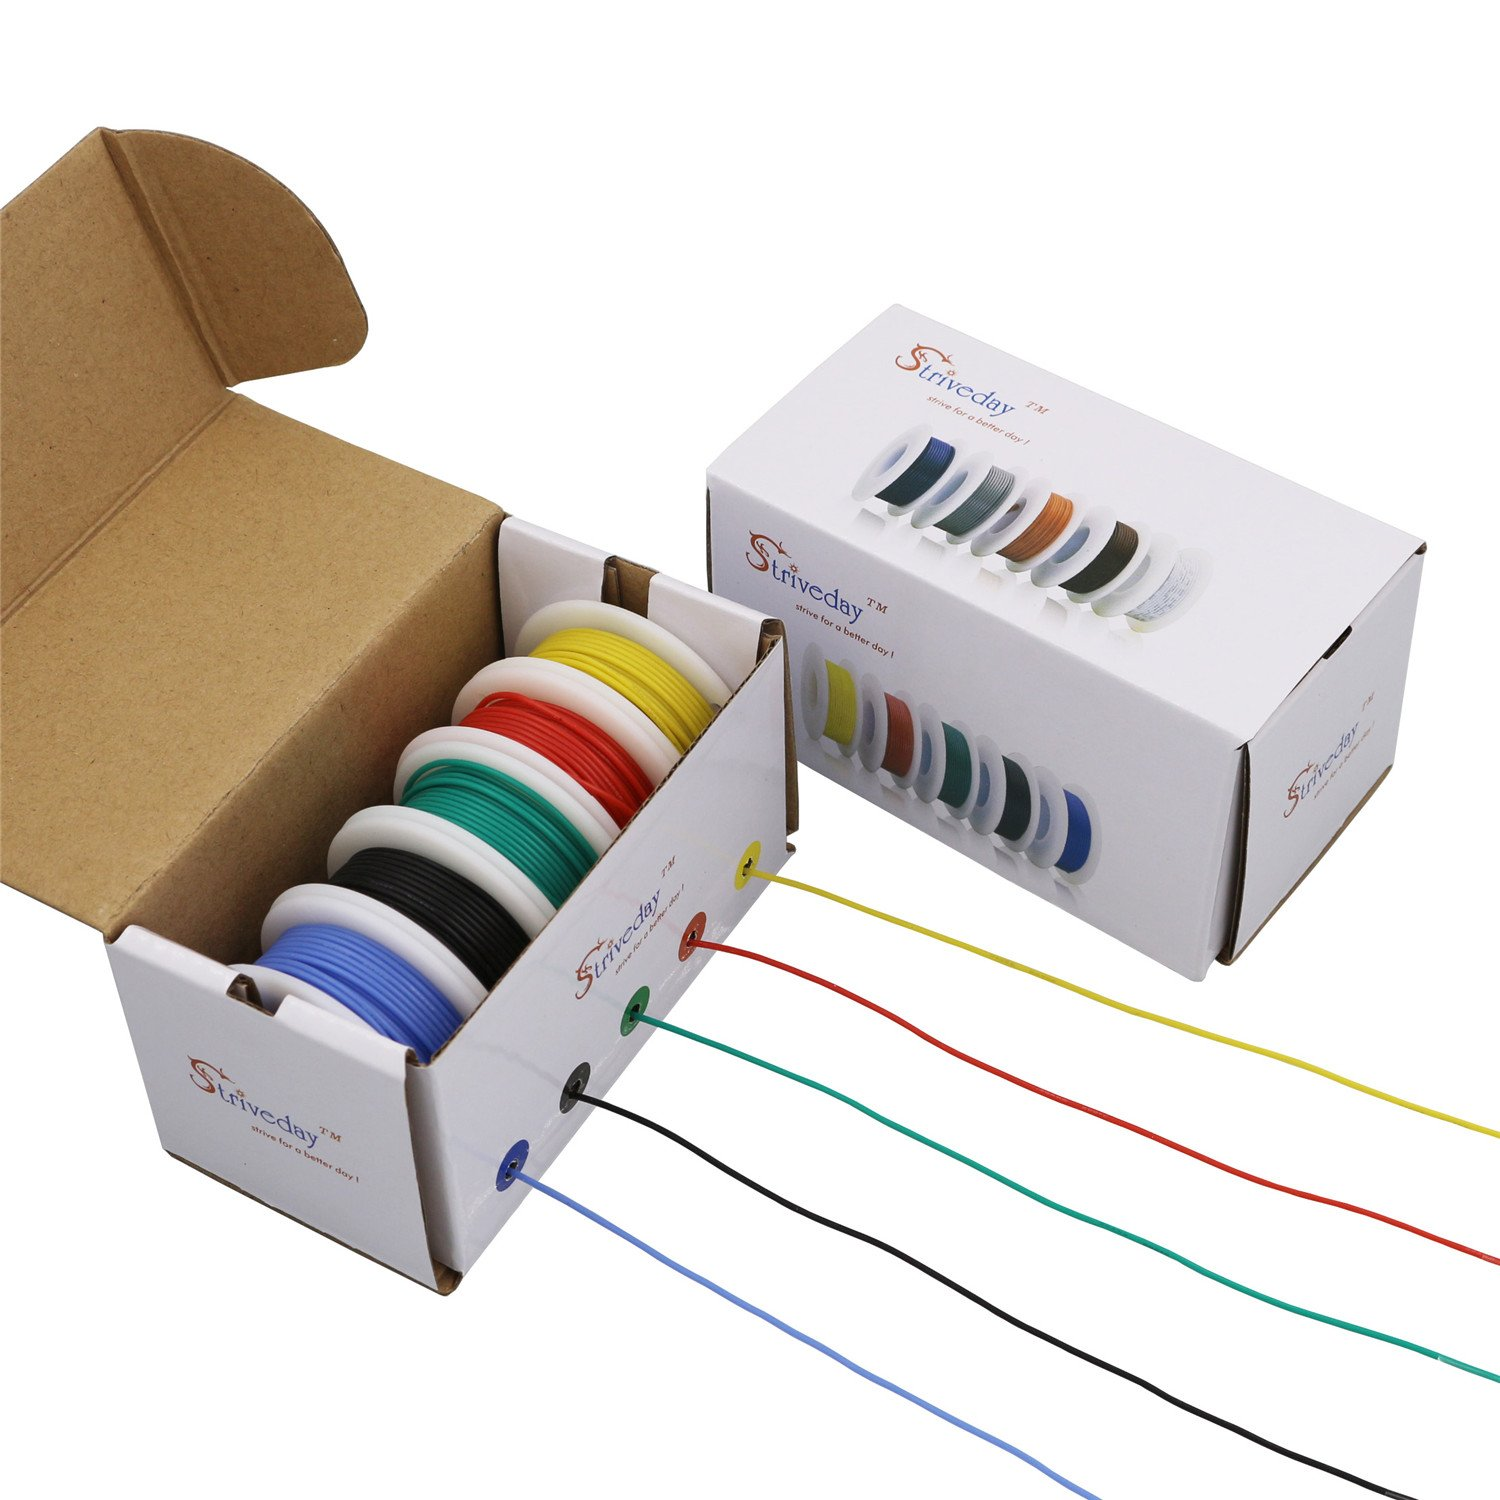 Electrical Wire Color Coded 22 Gauge Wires Striveday 30 Awg Flexible Silicone Electric Coper Hook Up 300v